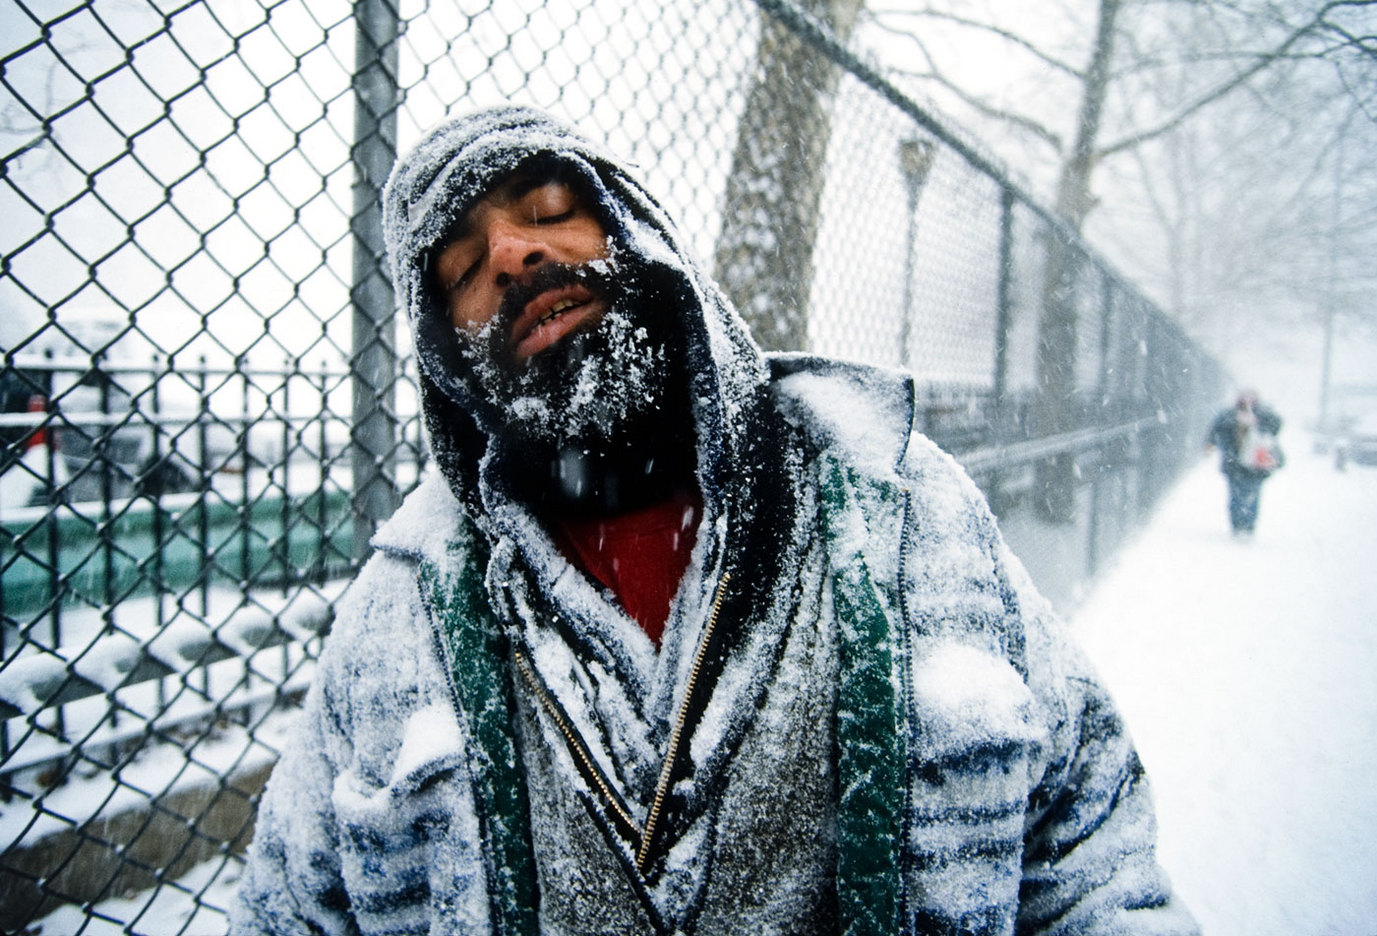 Mentally ill and homeless in New York City :  DAILY LIFE; The Rich, the Poor & the Others : Viviane Moos |  Documentary Photographer